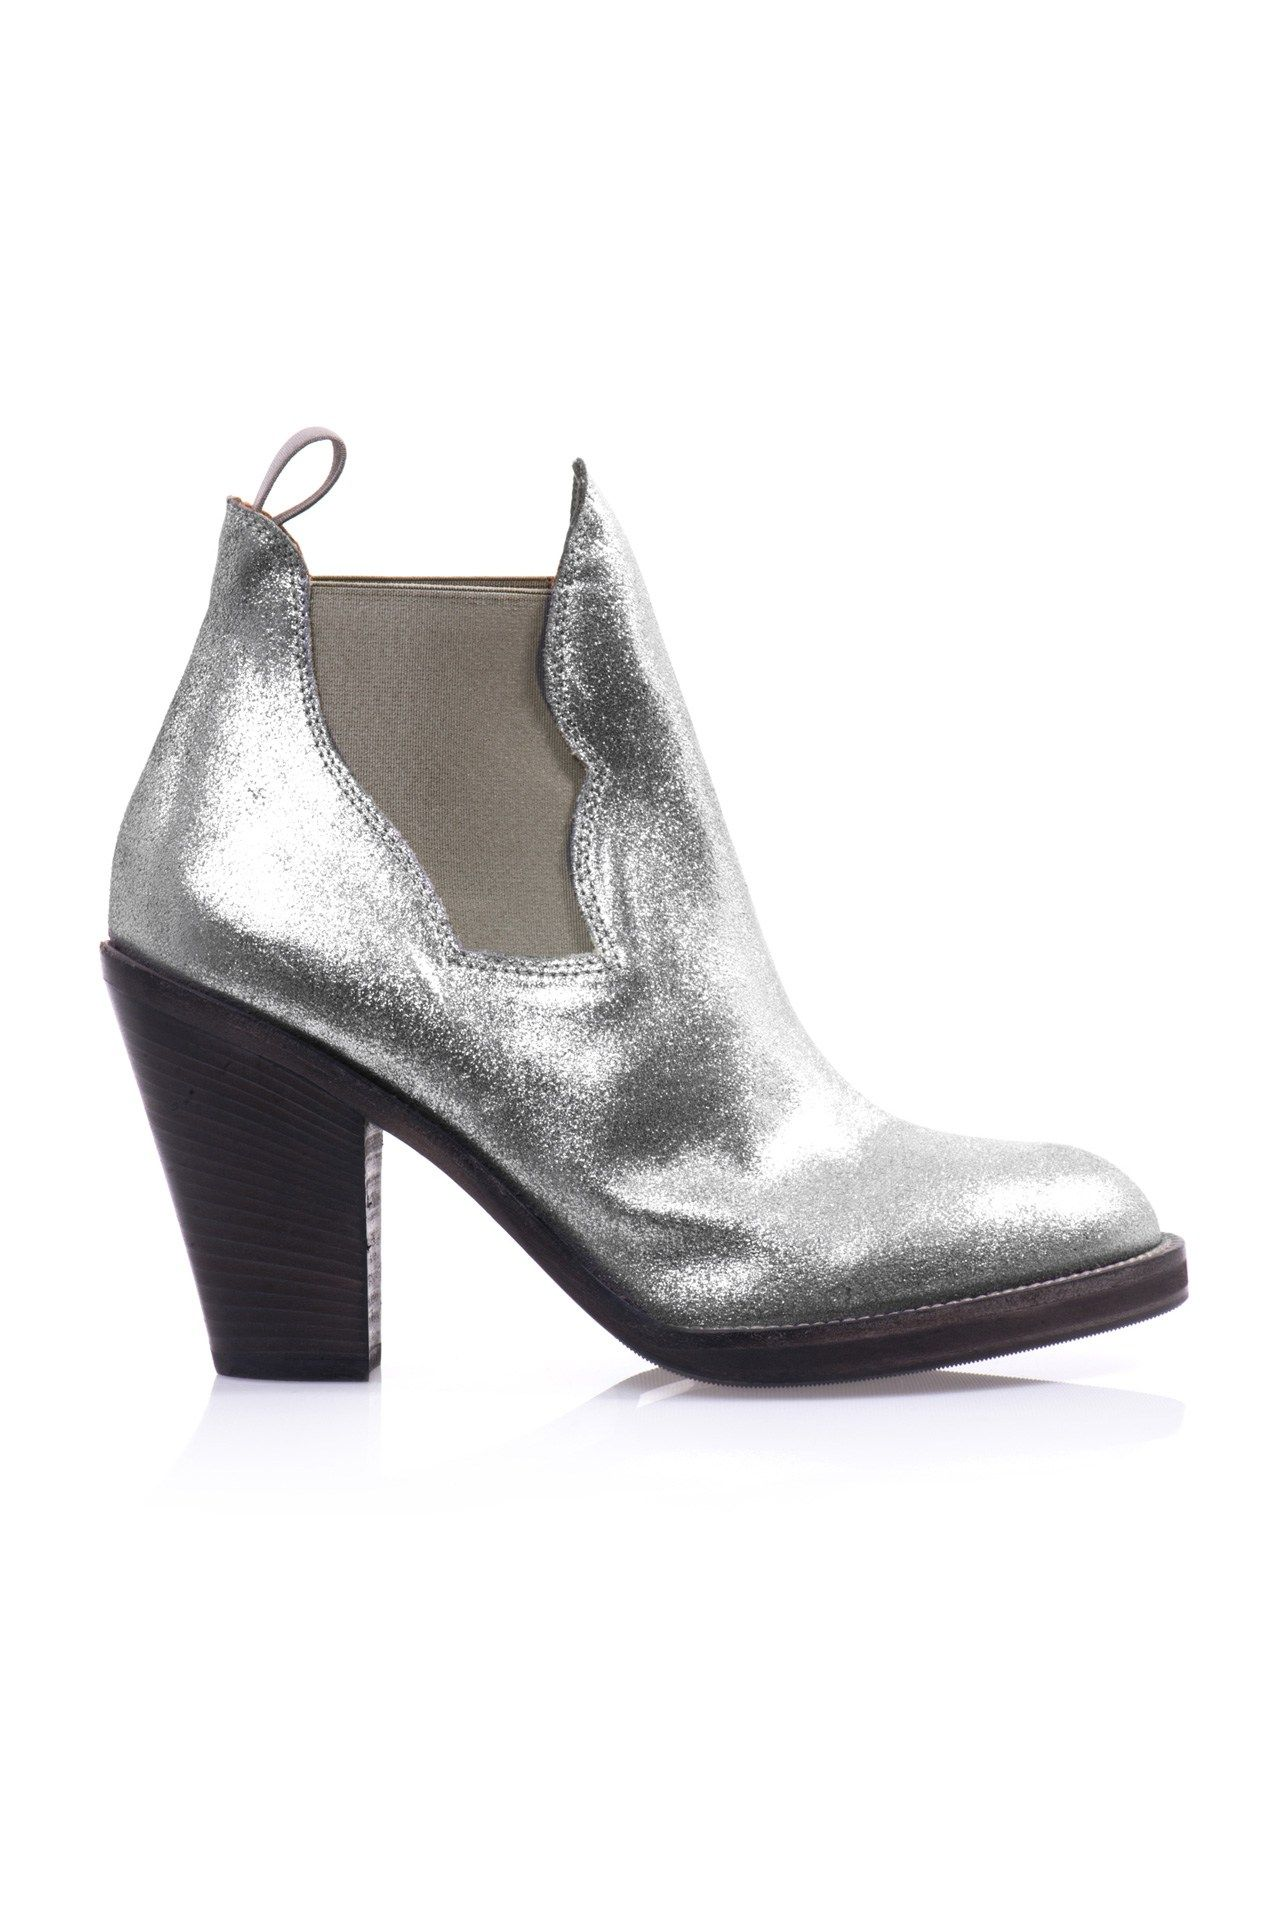 Acne - Shimmer a little - http://www.vogue.co.uk/accessories/news/2013/11/best-boots/gallery/1078892